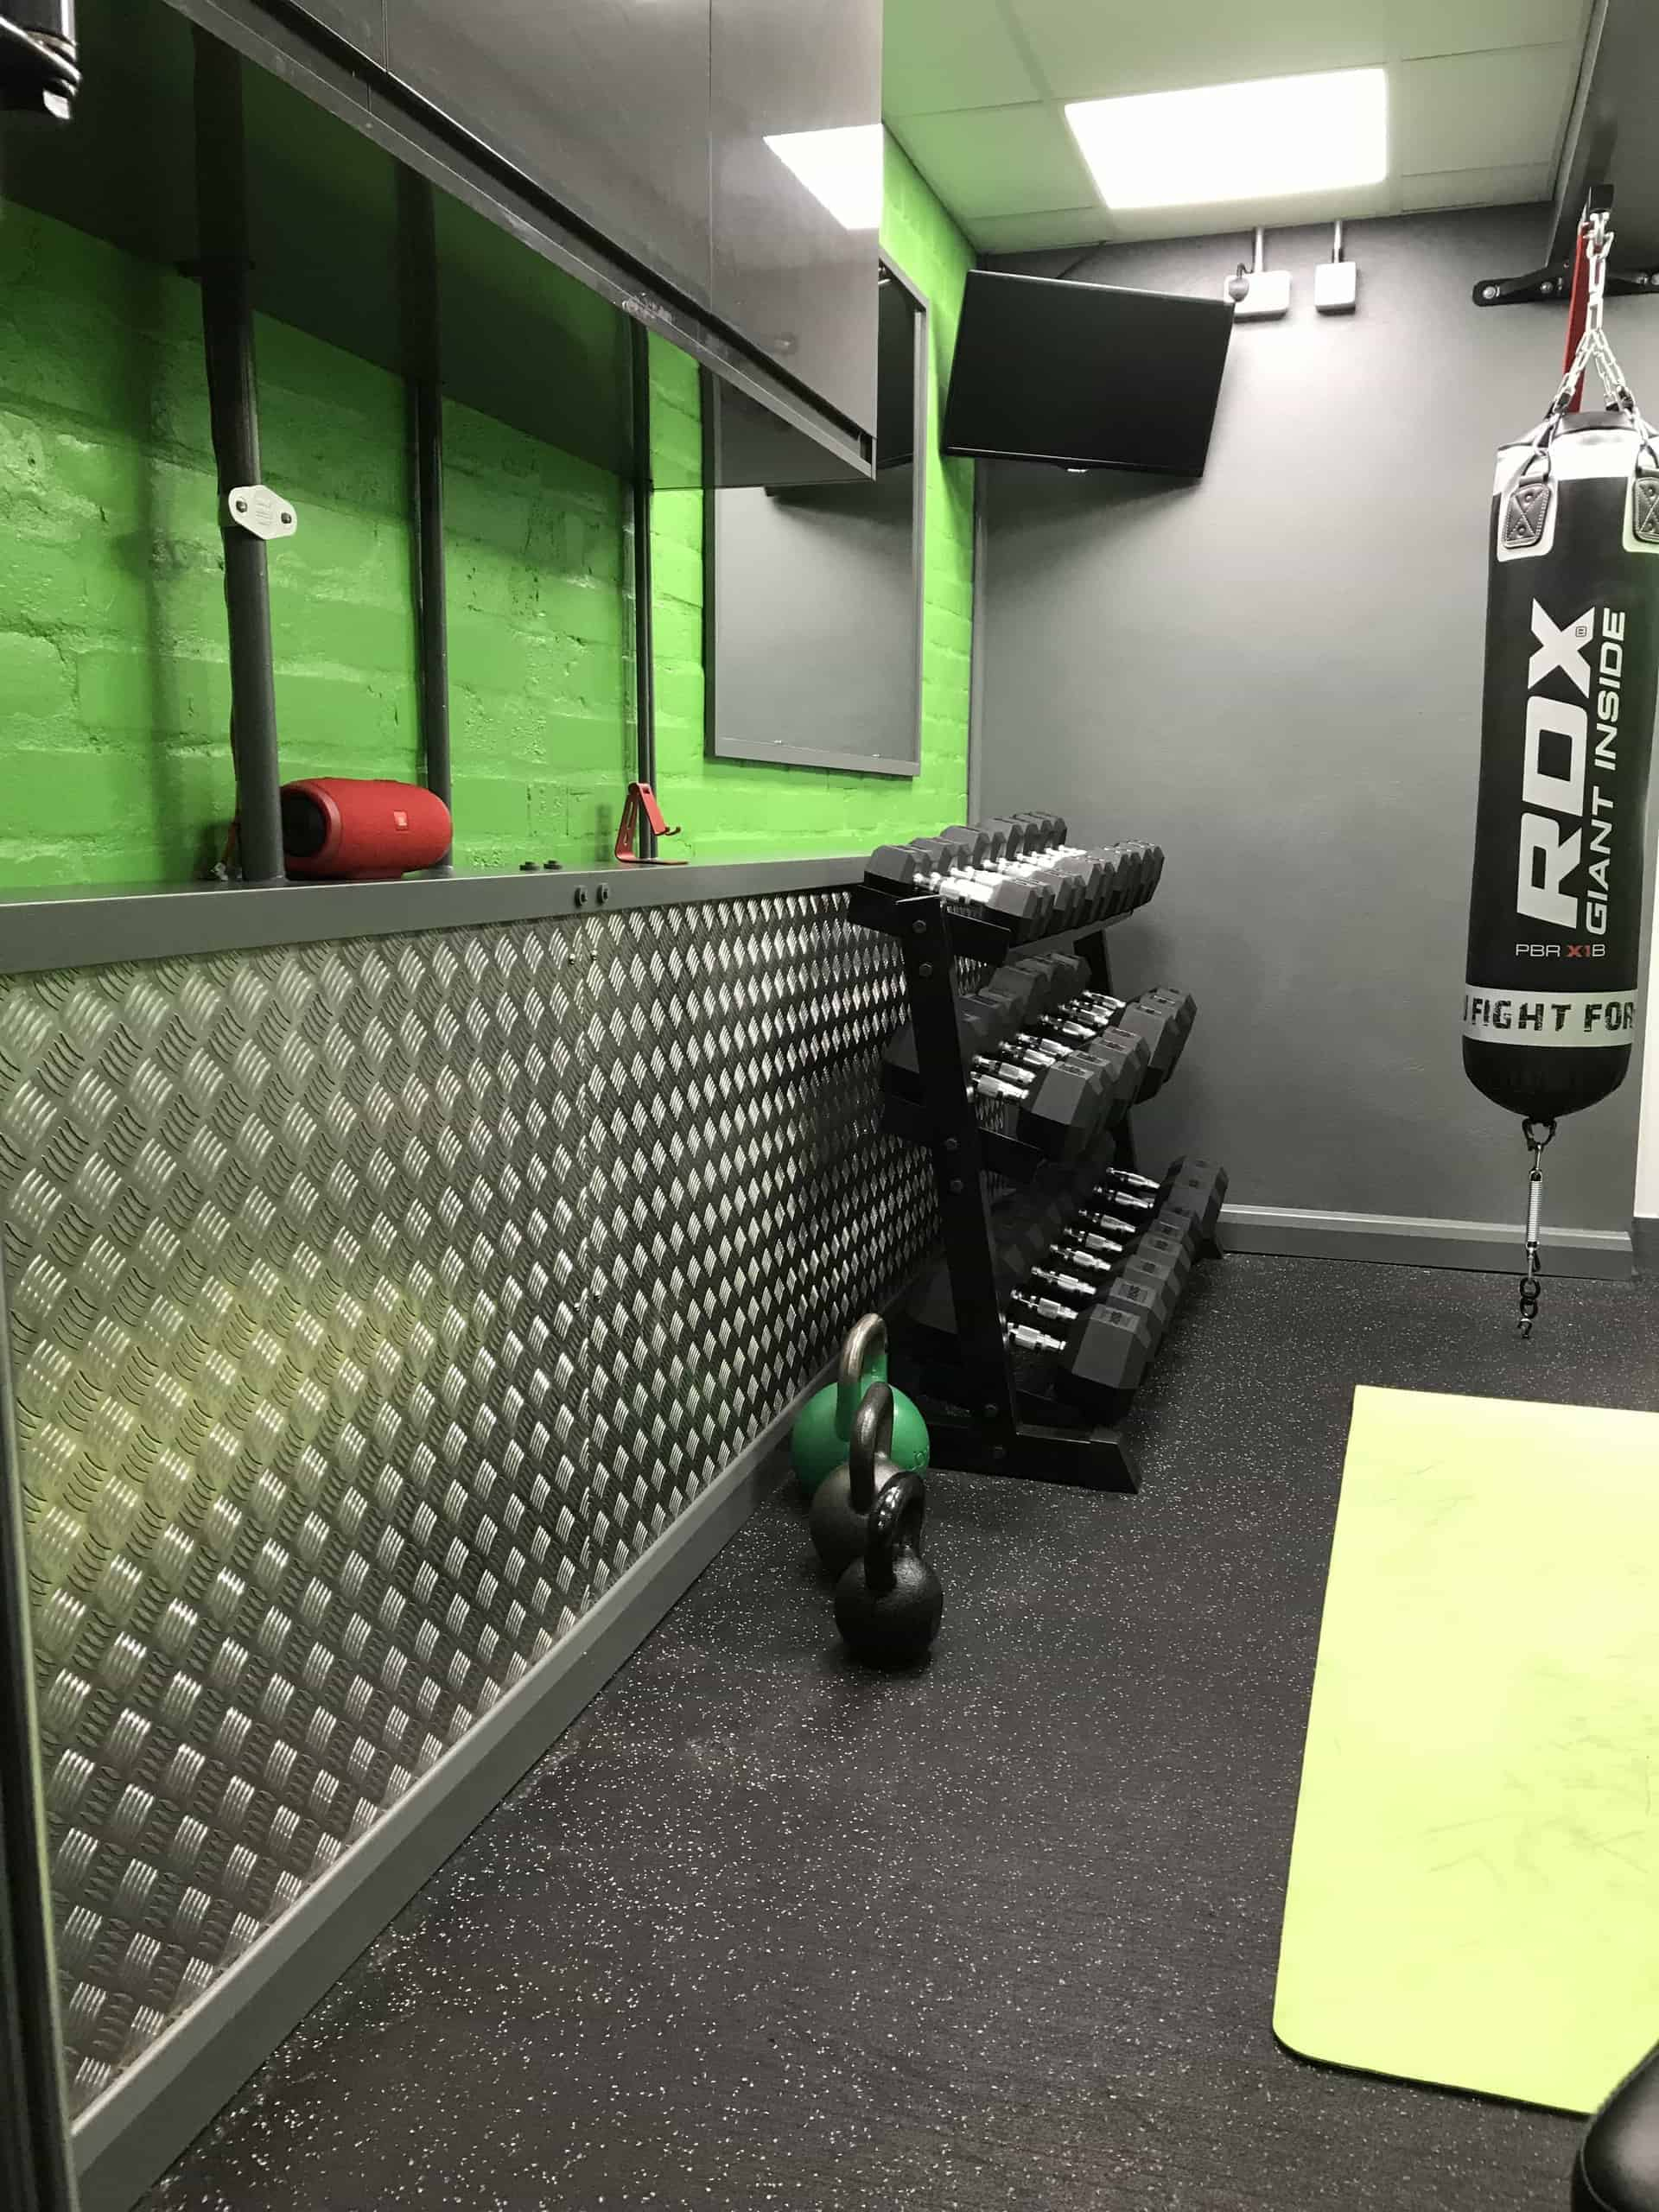 Checker Plate Wall Protection | Homemade Garage Gym Wall Protection – Chequer Plate Direct